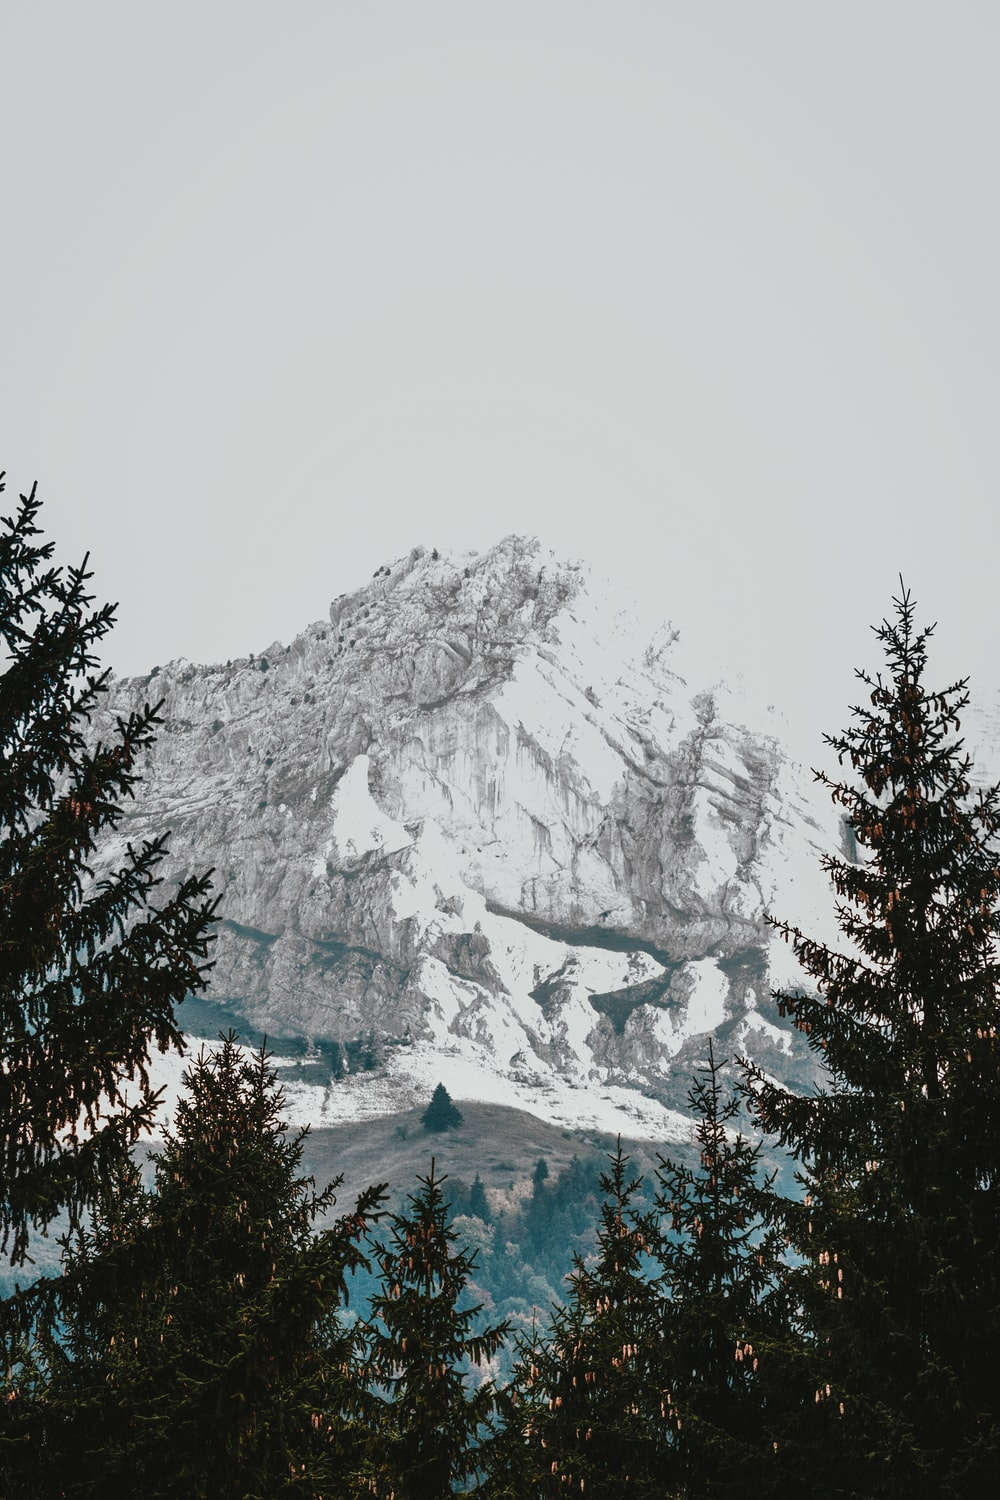 ice-capped mountains near tree at daytime